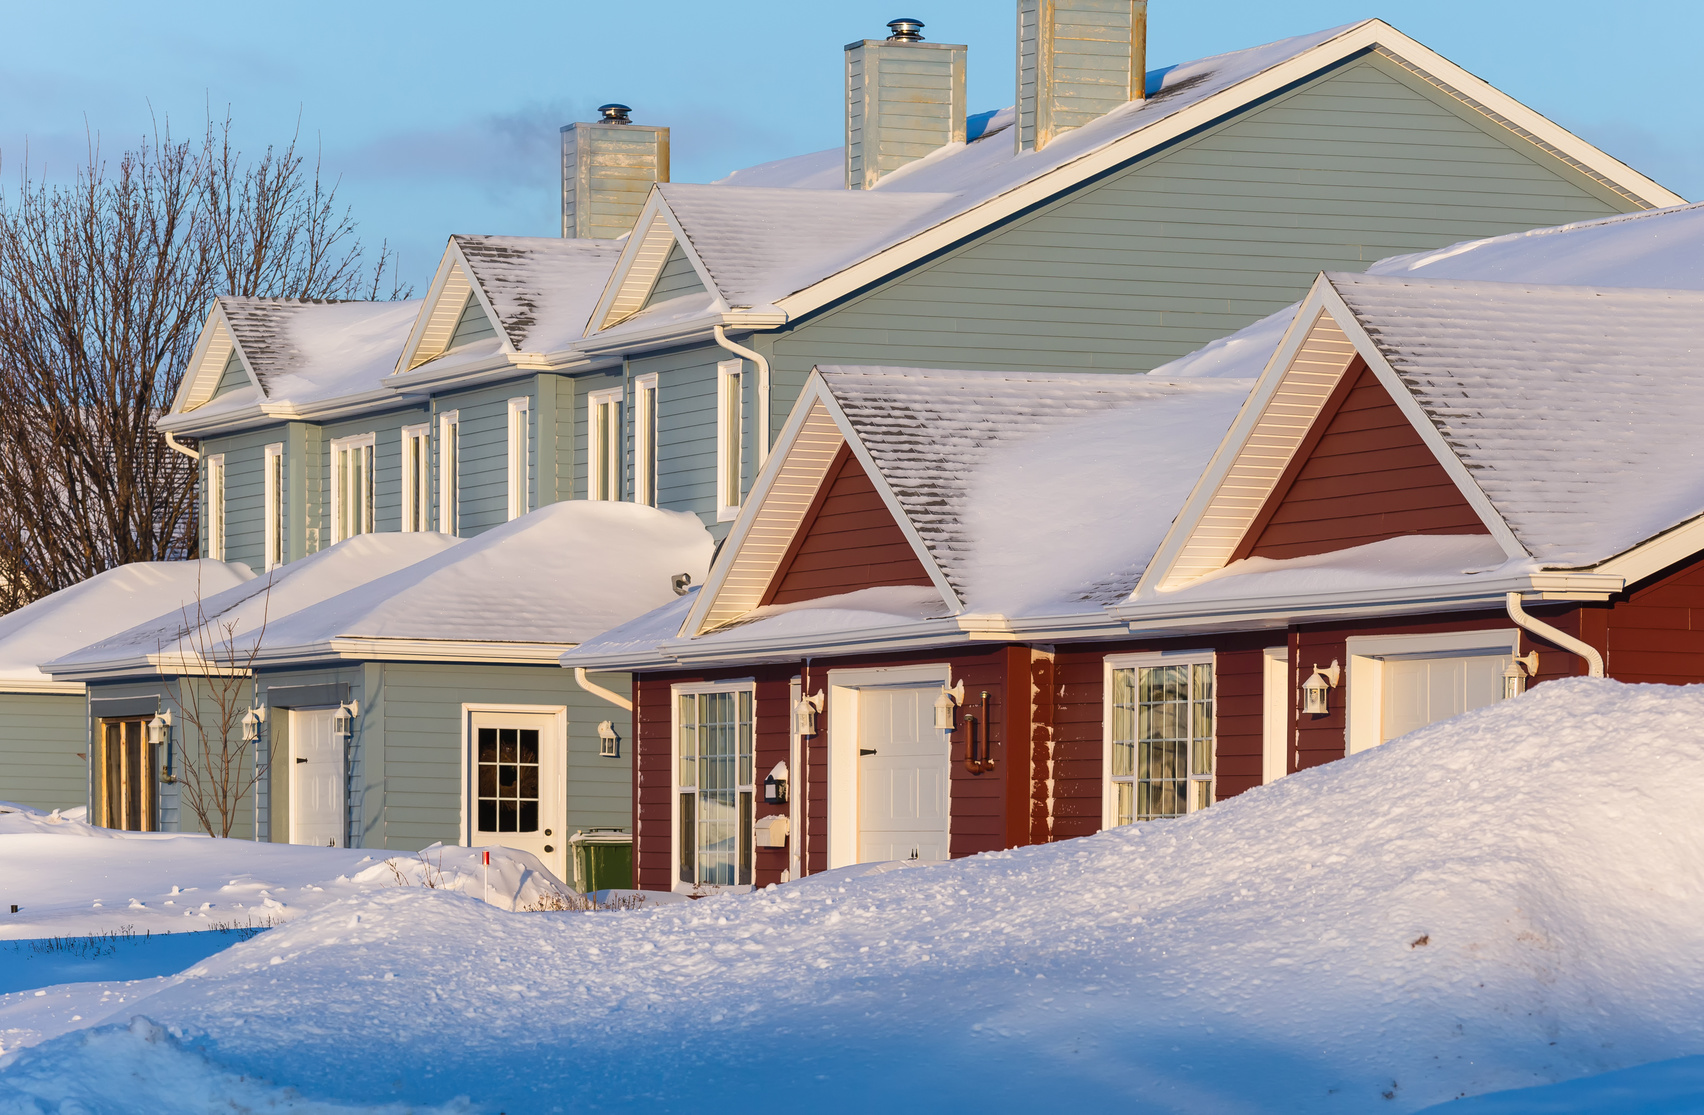 5 Easy Ways to Winterize Your Home in Kansas City